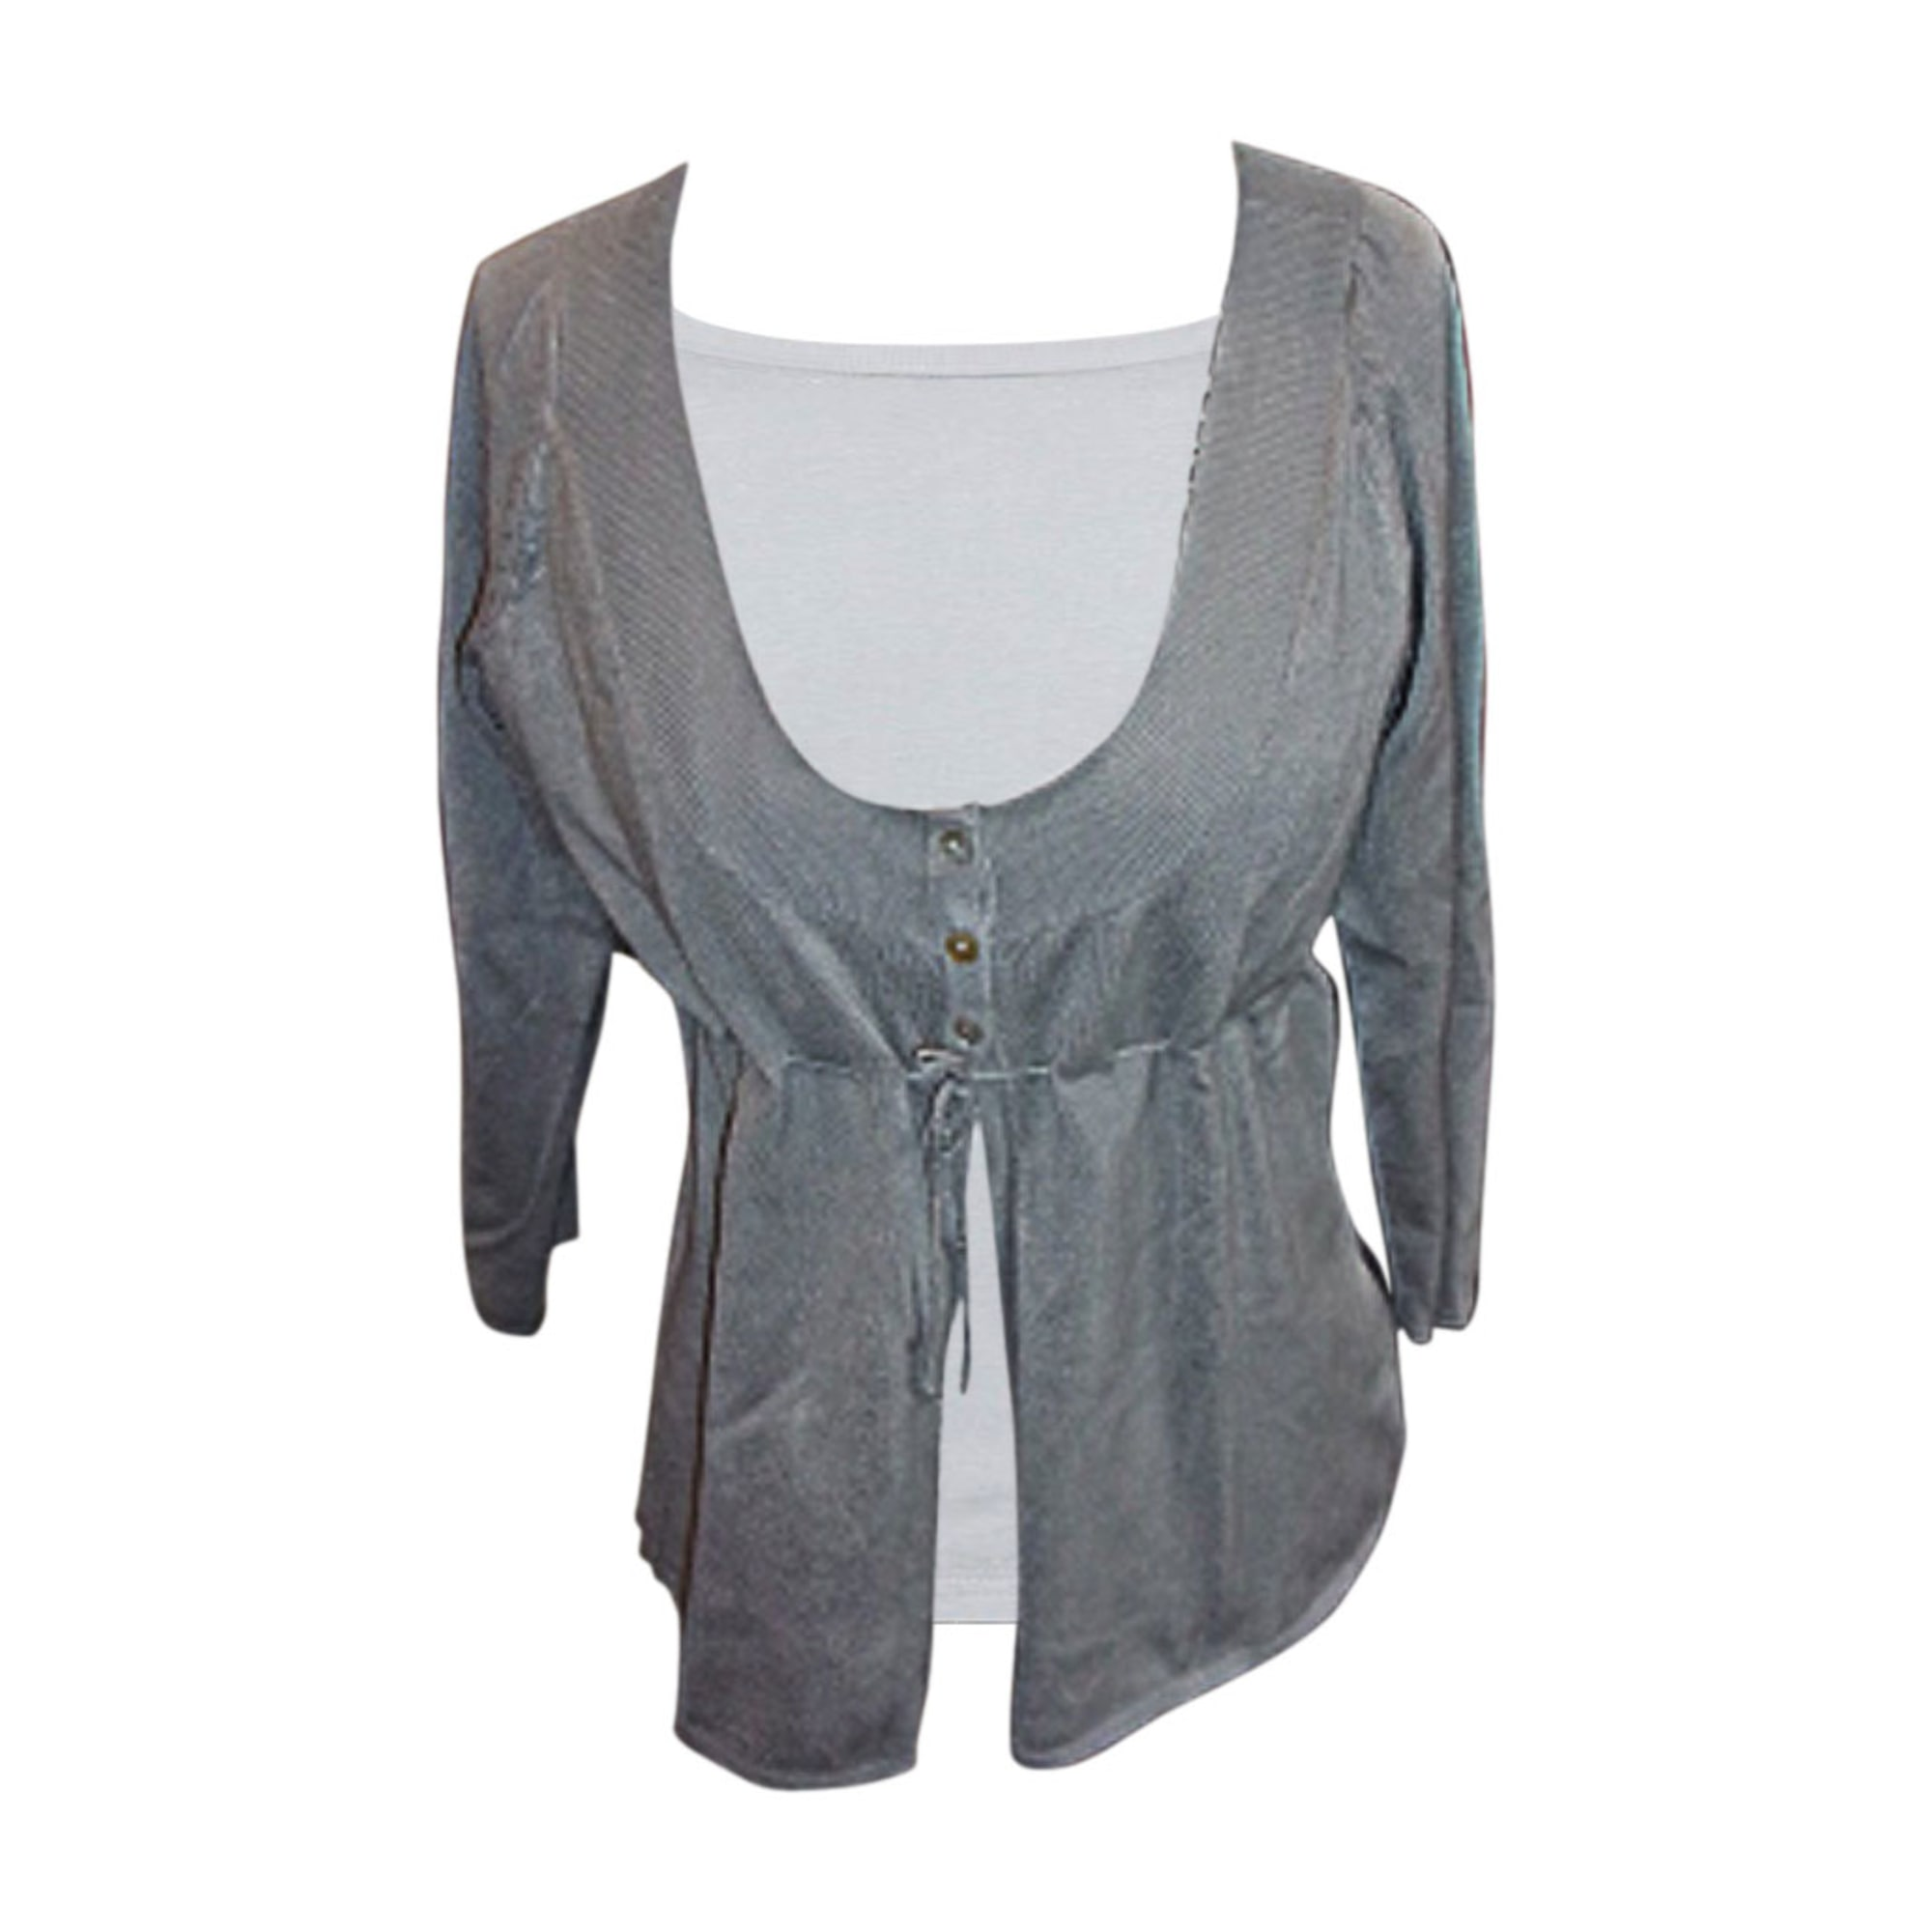 Gilet, cardigan BEST MOUNTAIN Gris, anthracite